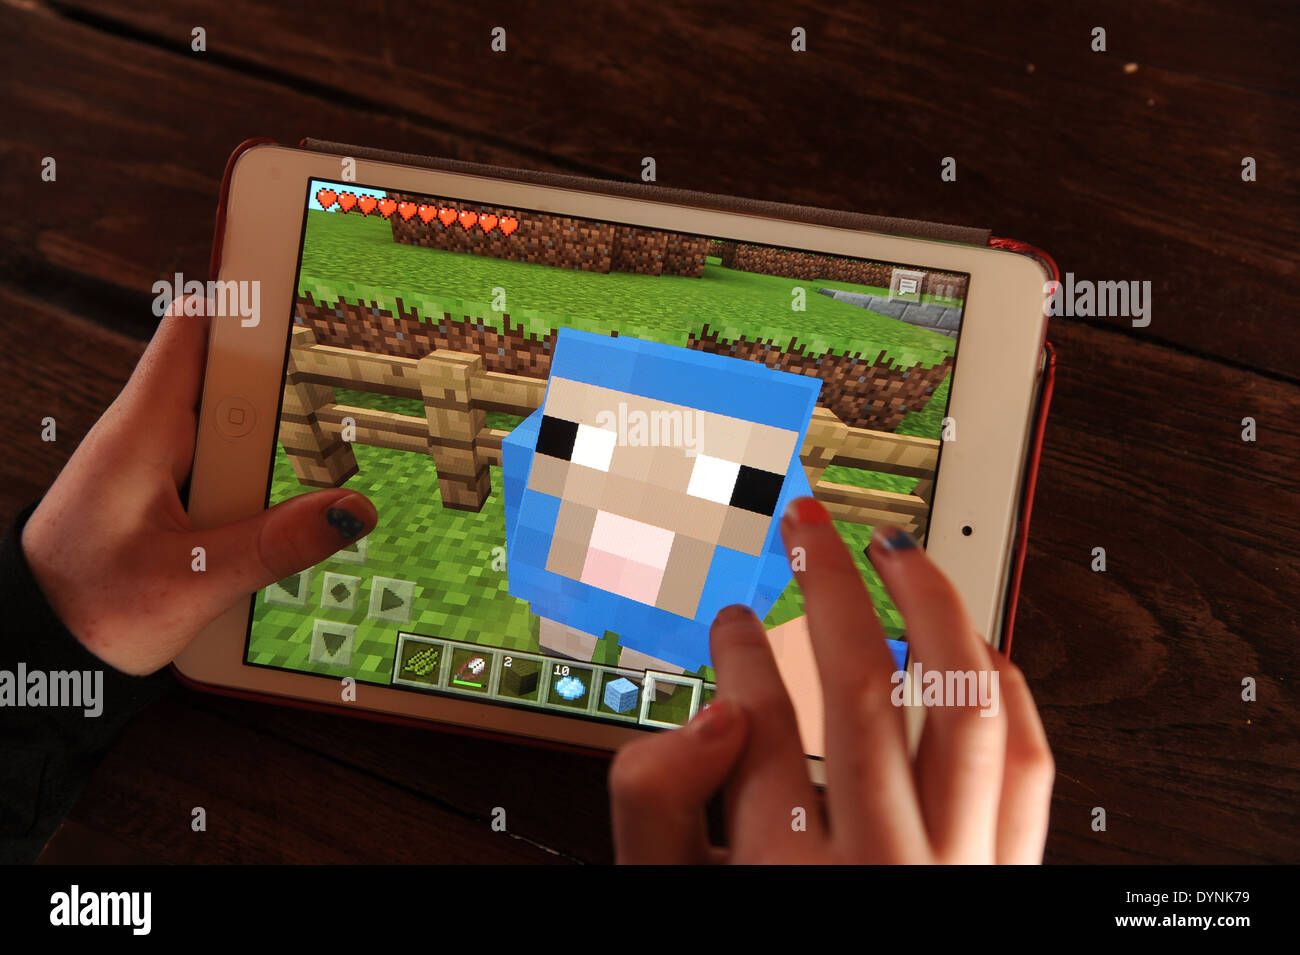 Young girl playing Minecraft on an apple ipad. - Stock Image